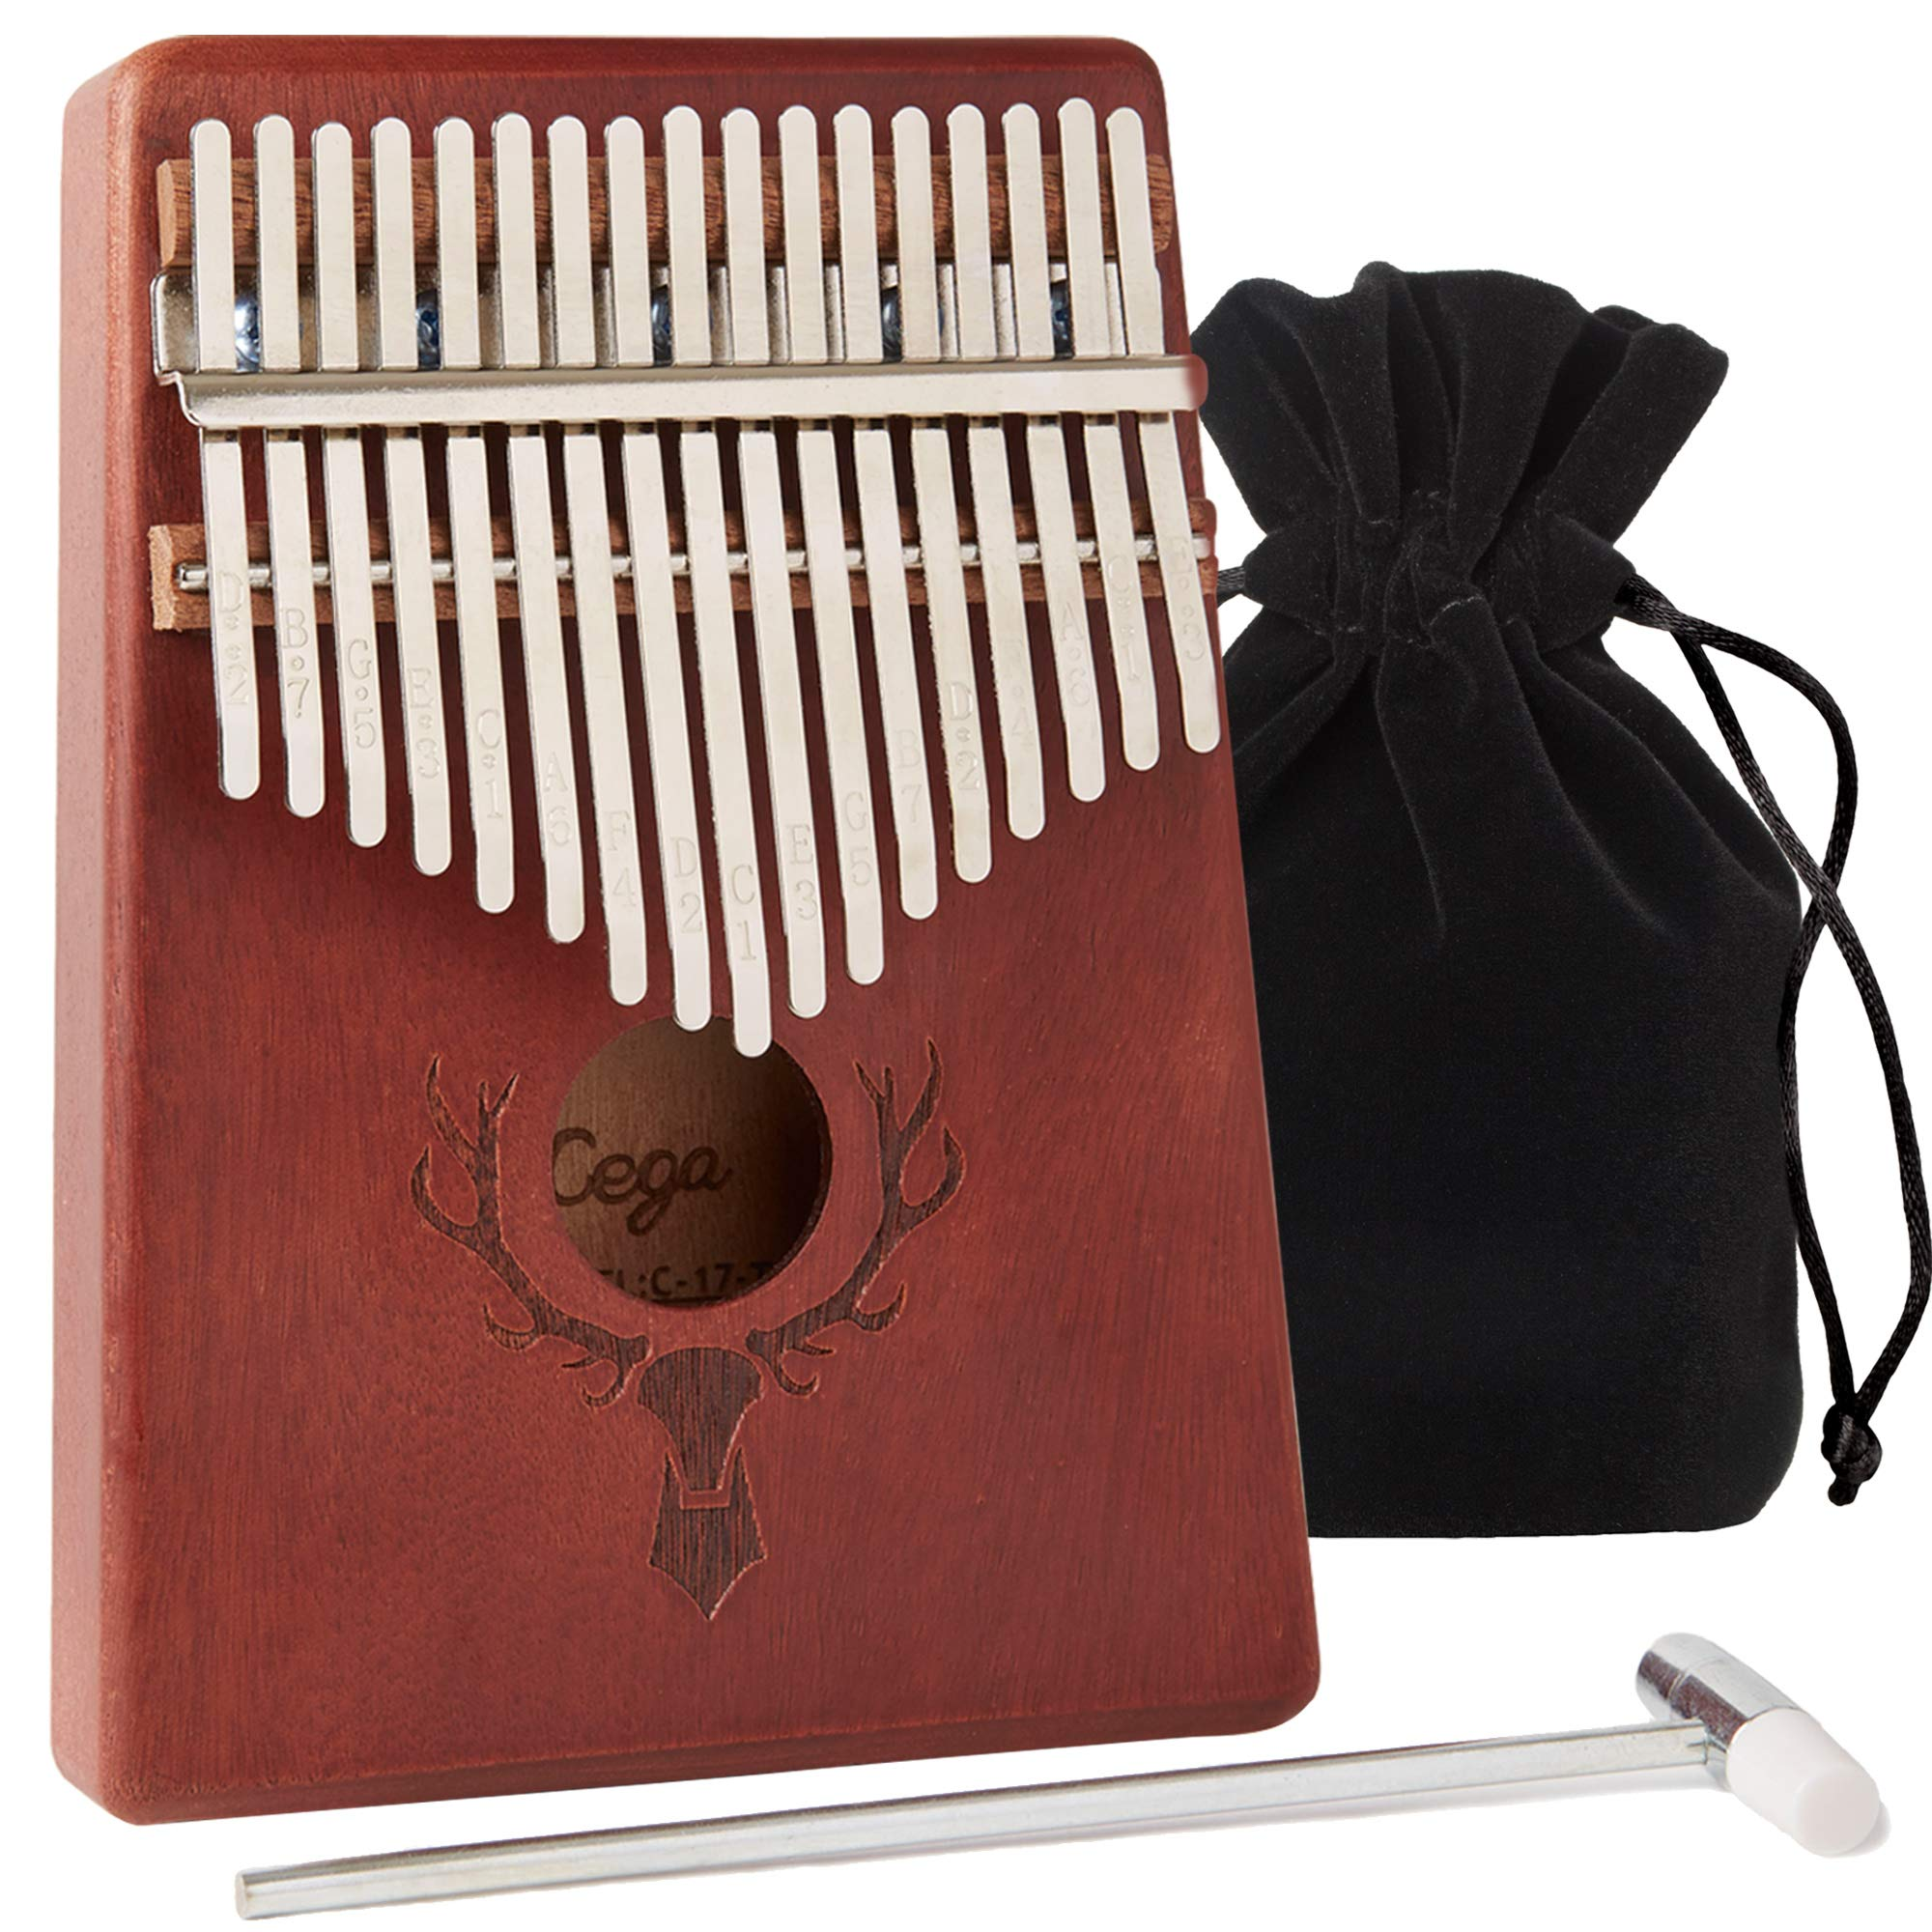 TimberTunes 17 Key Kalimba Thumb Finger Piano Therapy Musical Instrument for Adults Children, Solid Mahogany Wood, Engraved Elk Antler,Tuning Hammer and Music Book, Engraved Keys, Velvet Case, Unique by Timbertunes (Image #1)